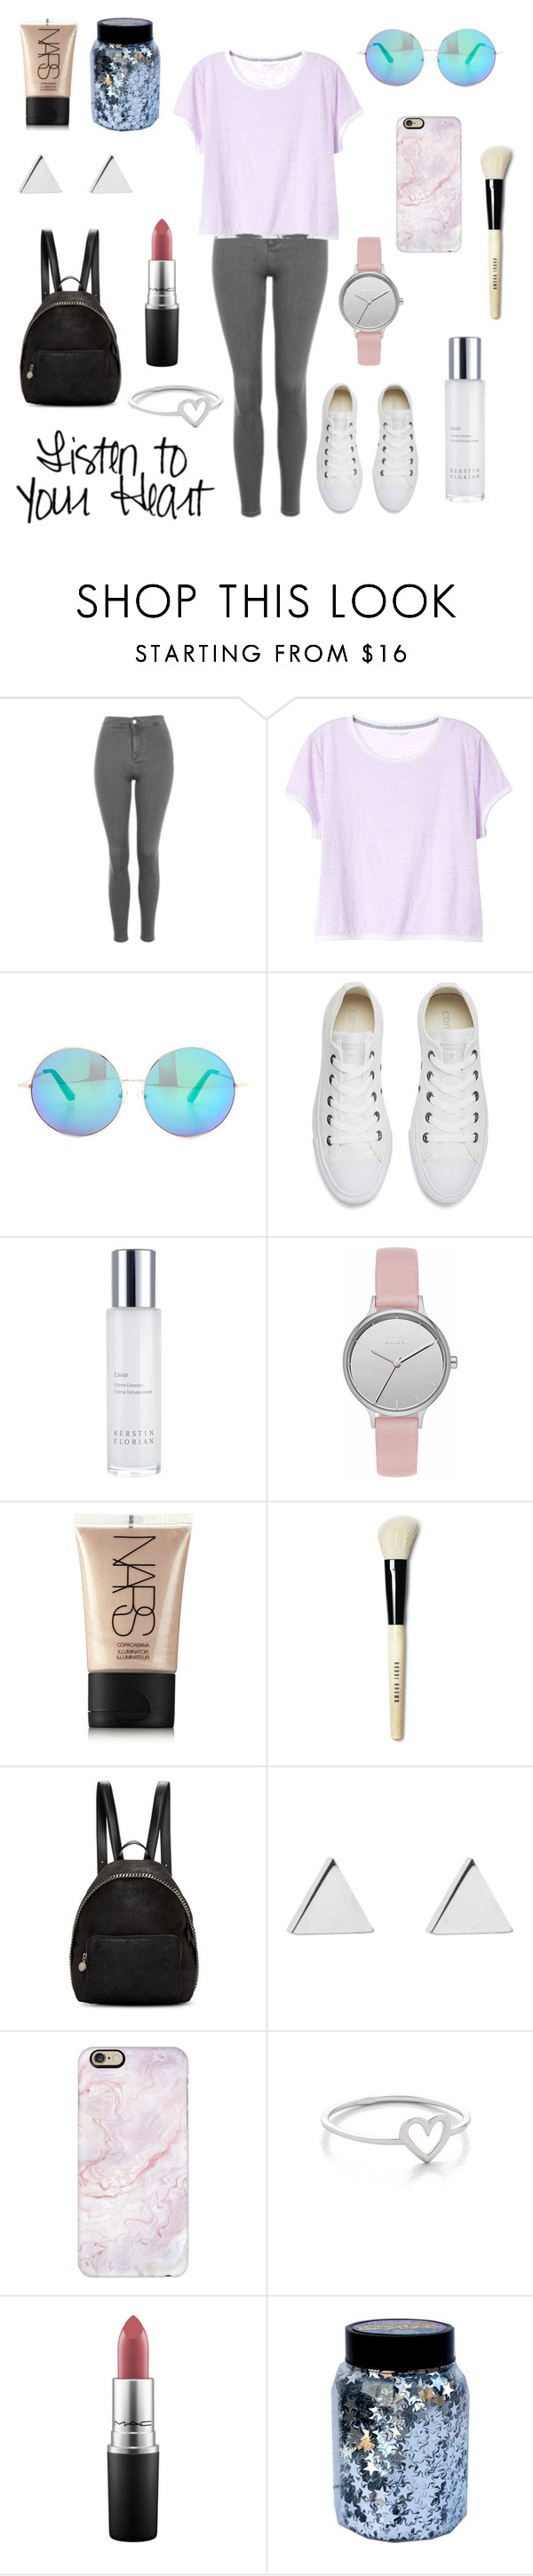 """""""Listen to your heart❣"""" by lucy672 ❤ liked on Polyvore featuring Topshop, Victoria's Secret, Matthew Williamson, Converse, Kerstin Florian, Skagen, NARS Cosmetics, Bobbi Brown Cosmetics, STELLA McCARTNEY and Jennifer Meyer Jewelry"""